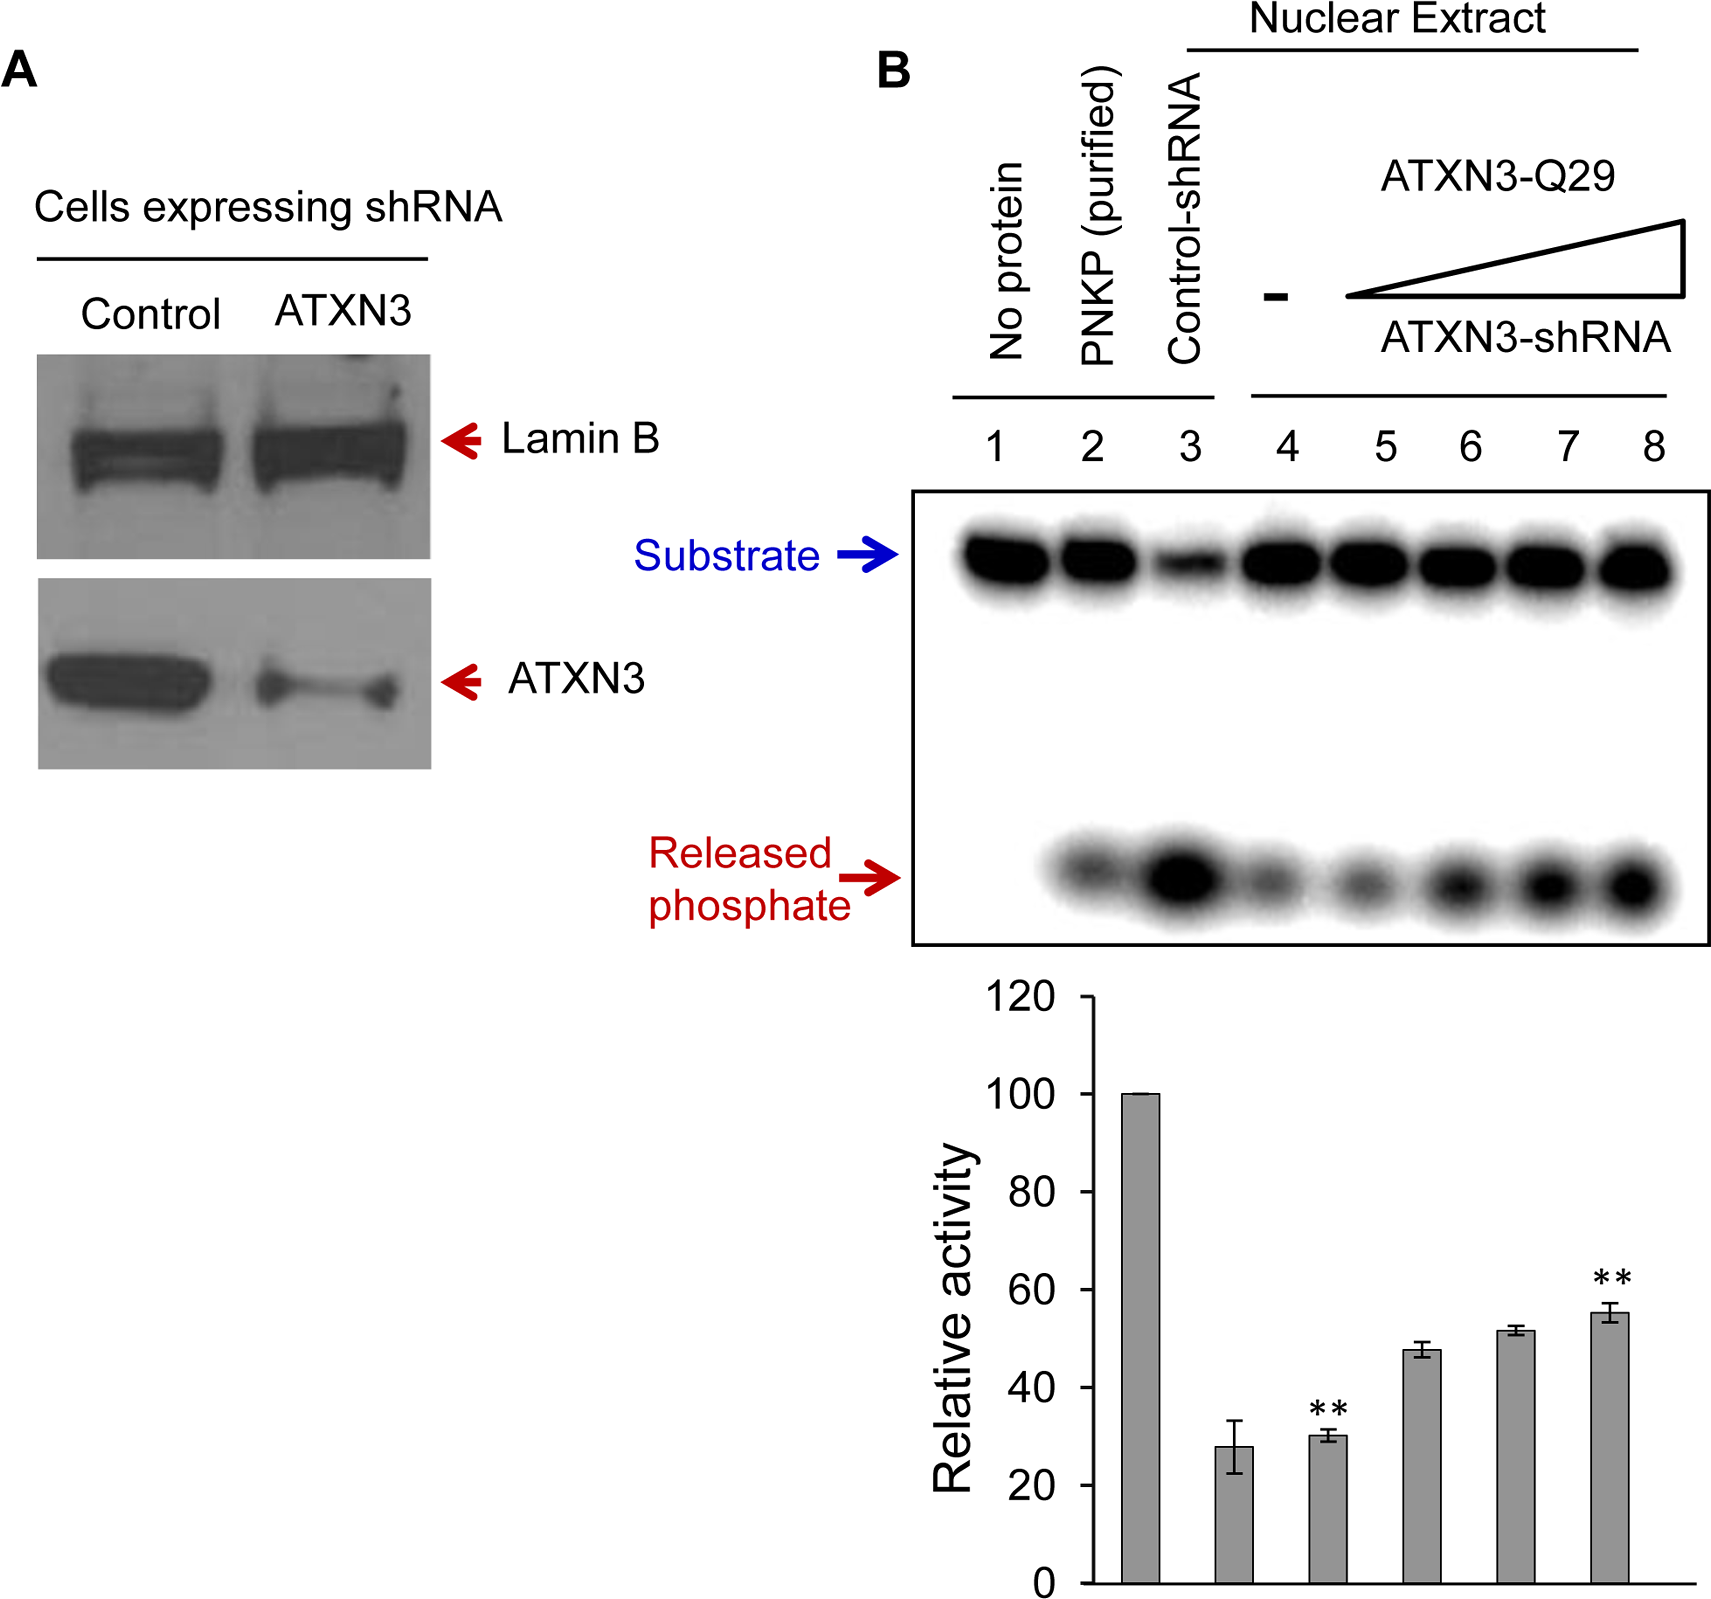 ATXN3 depletion decreases PNKP's 3'-phosphatase activity.